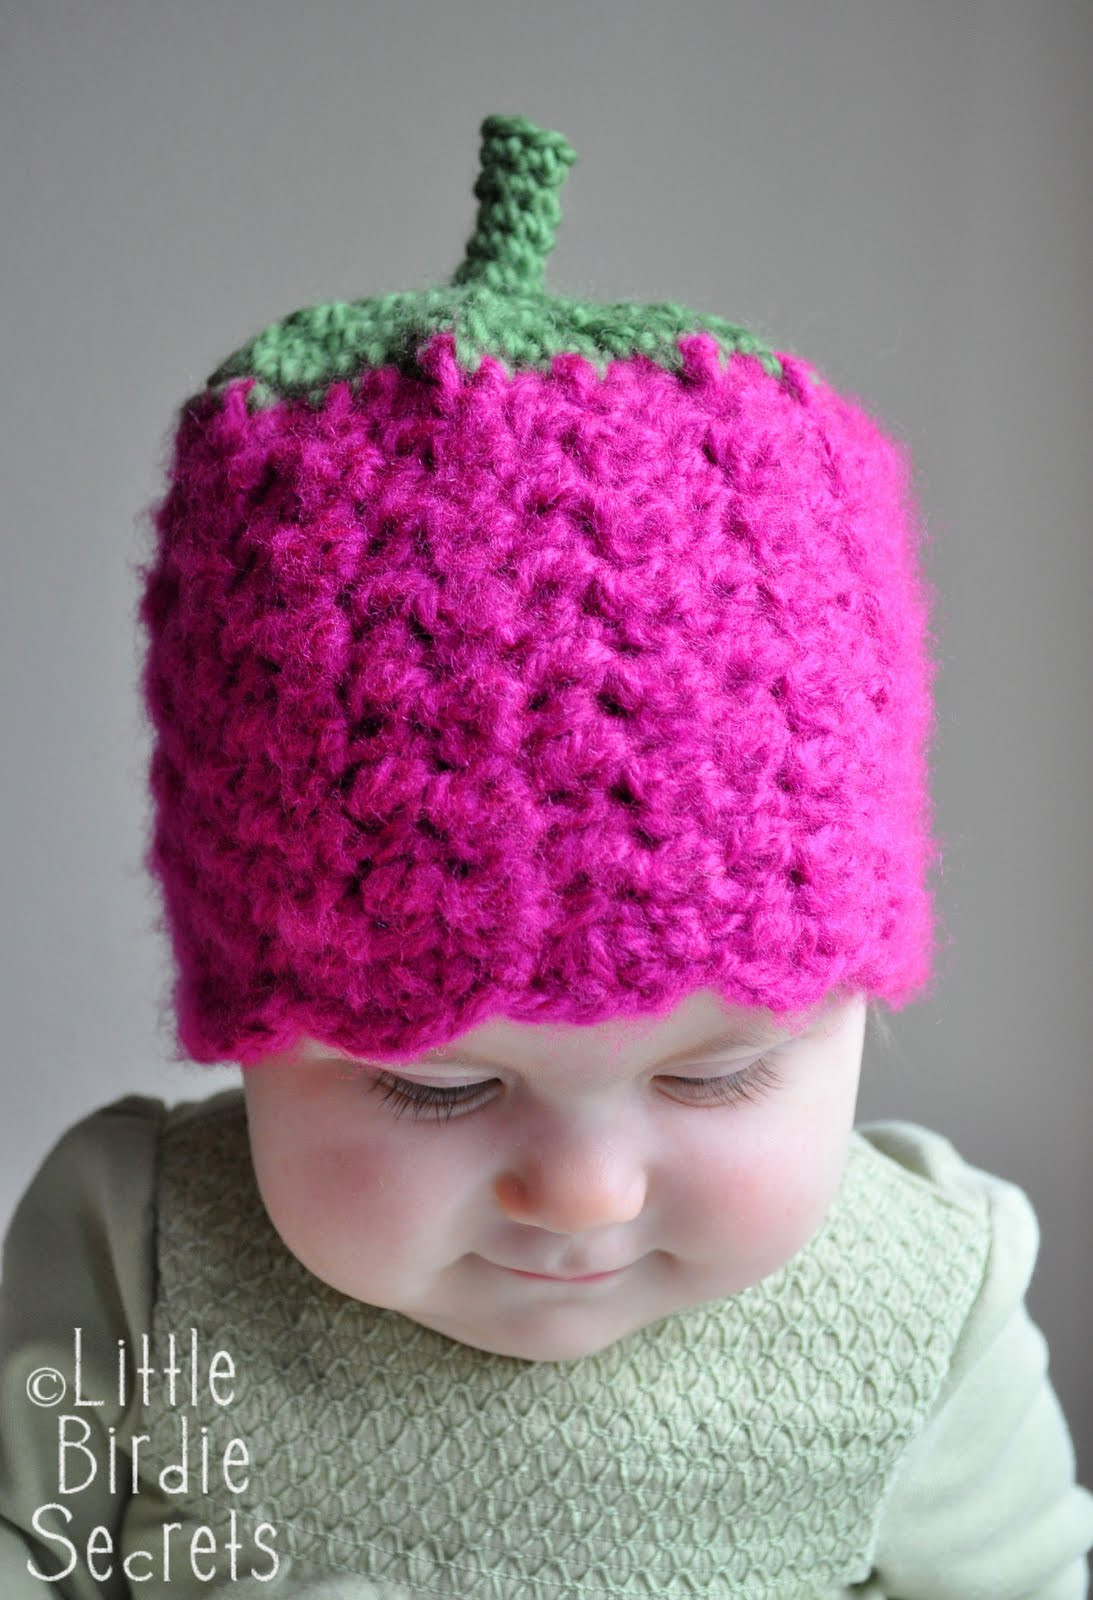 Free Crochet Hat Patterns Unique Raspberry or Strawberry Free Crochet Pattern and A Of Superb 50 Ideas Free Crochet Hat Patterns